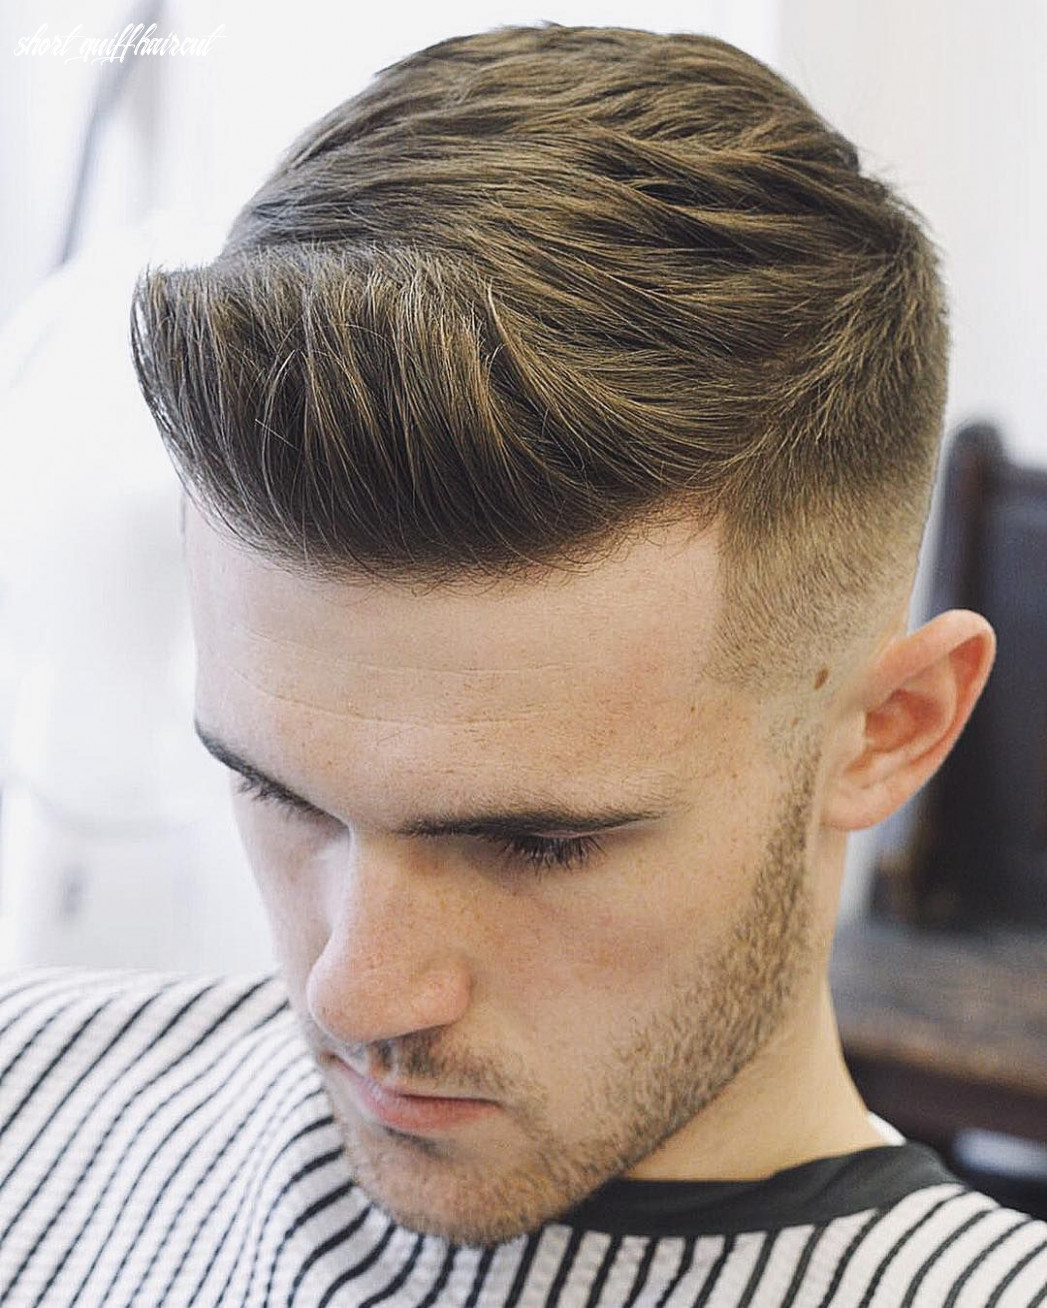 9 new hairstyles for men (9 update)   mens hairstyles short